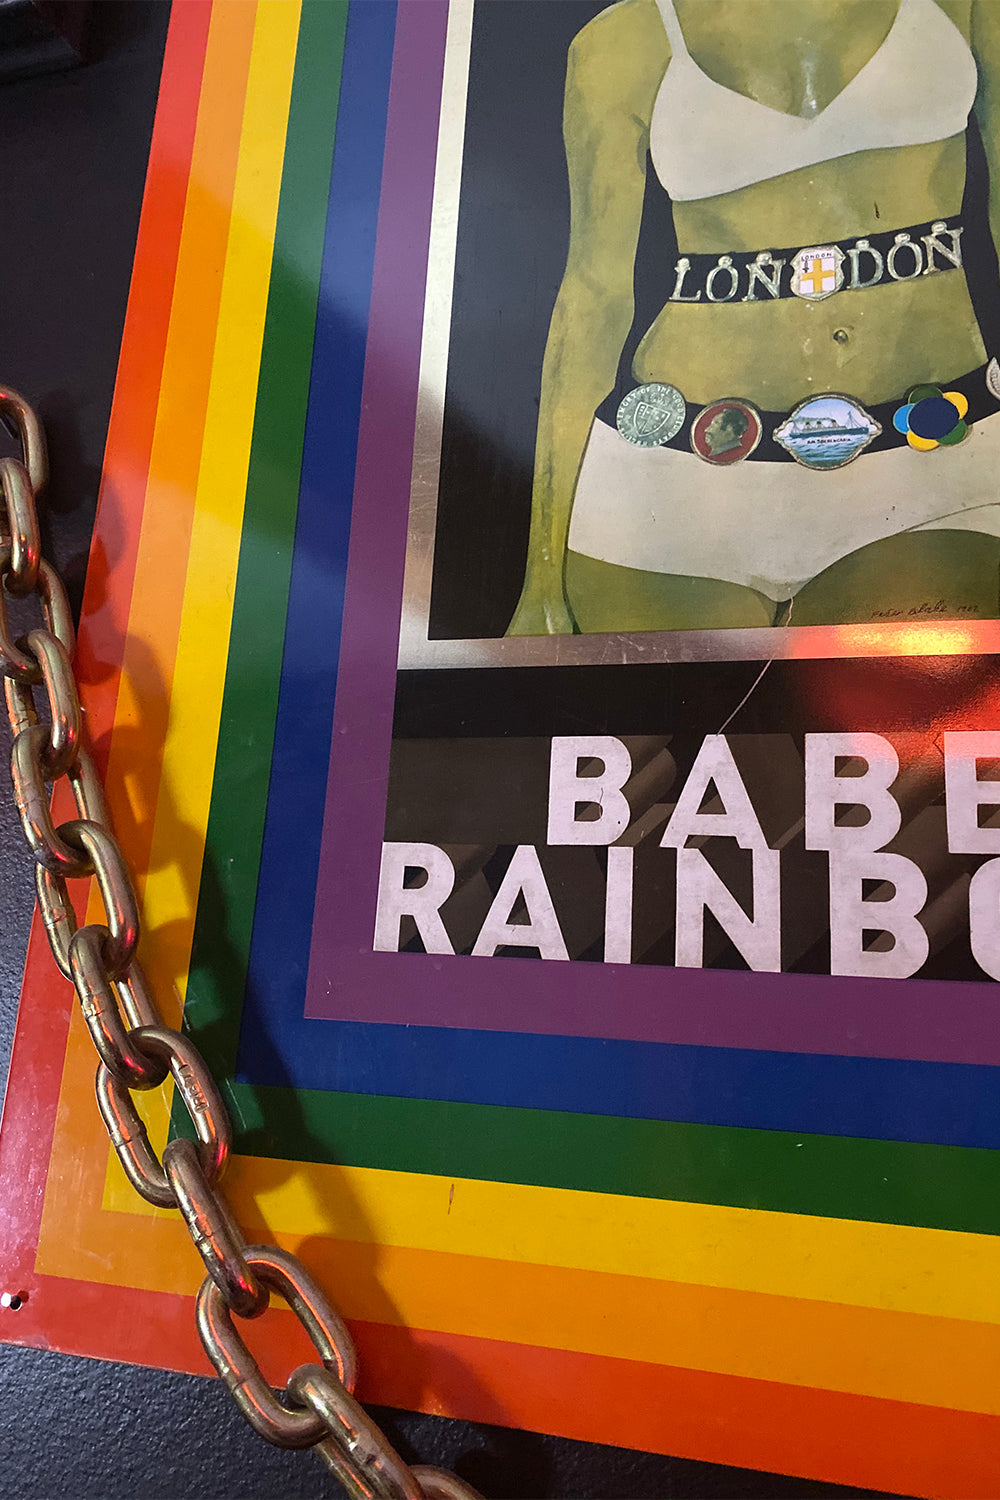 Authentic 1968 Babe Rainbow Tin Print by Peter Blake